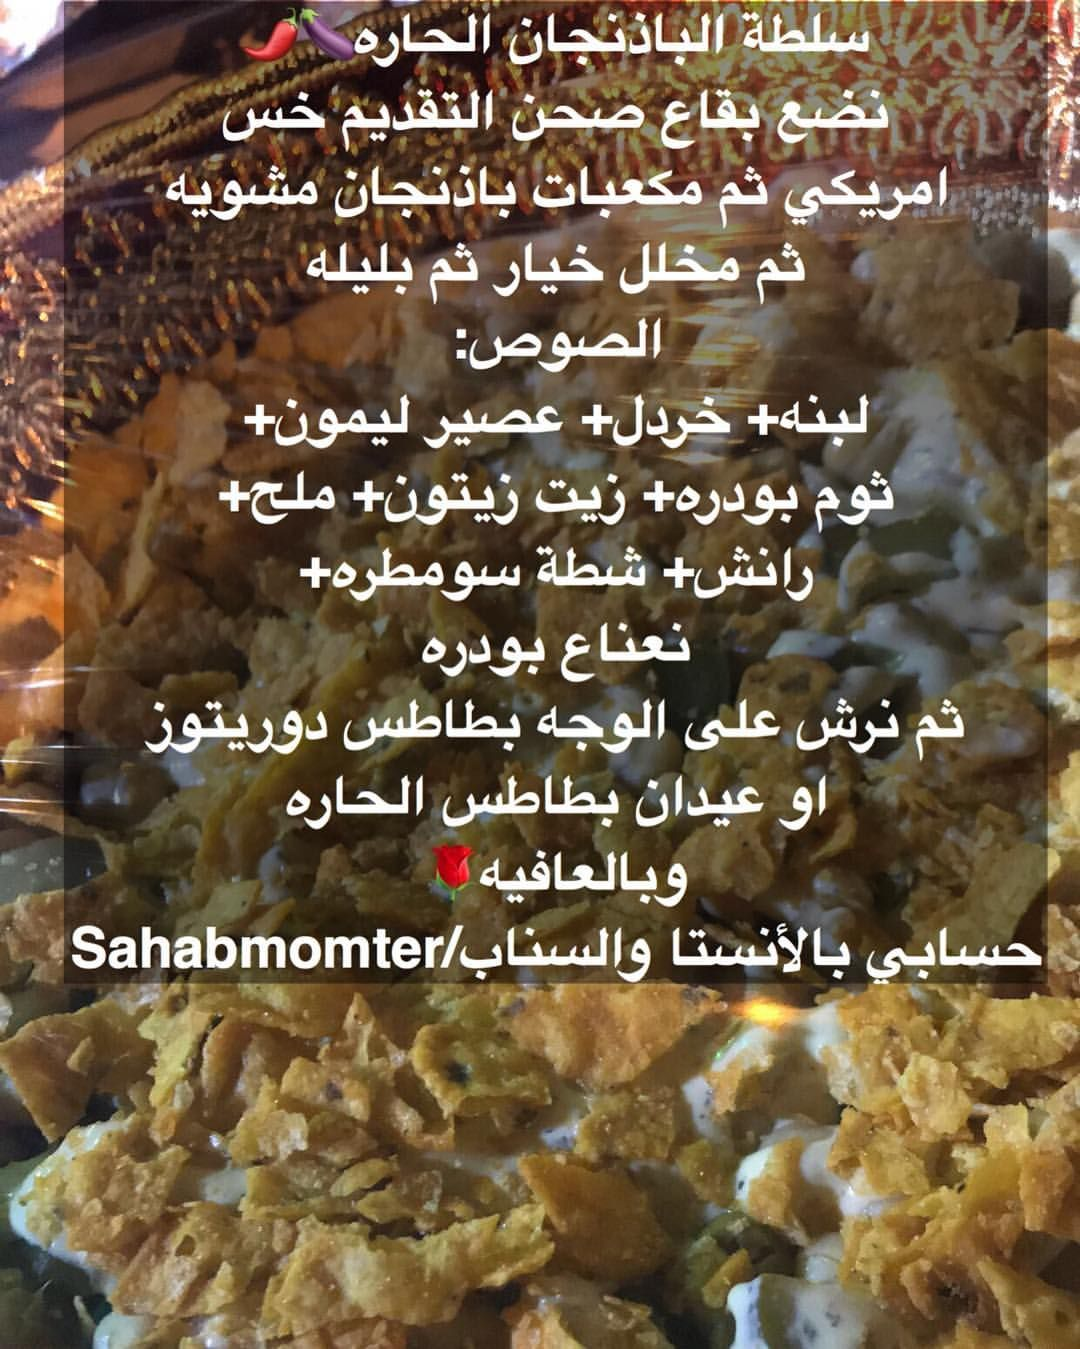 سلطة الباذنجان الحارة Recipes Food Beef